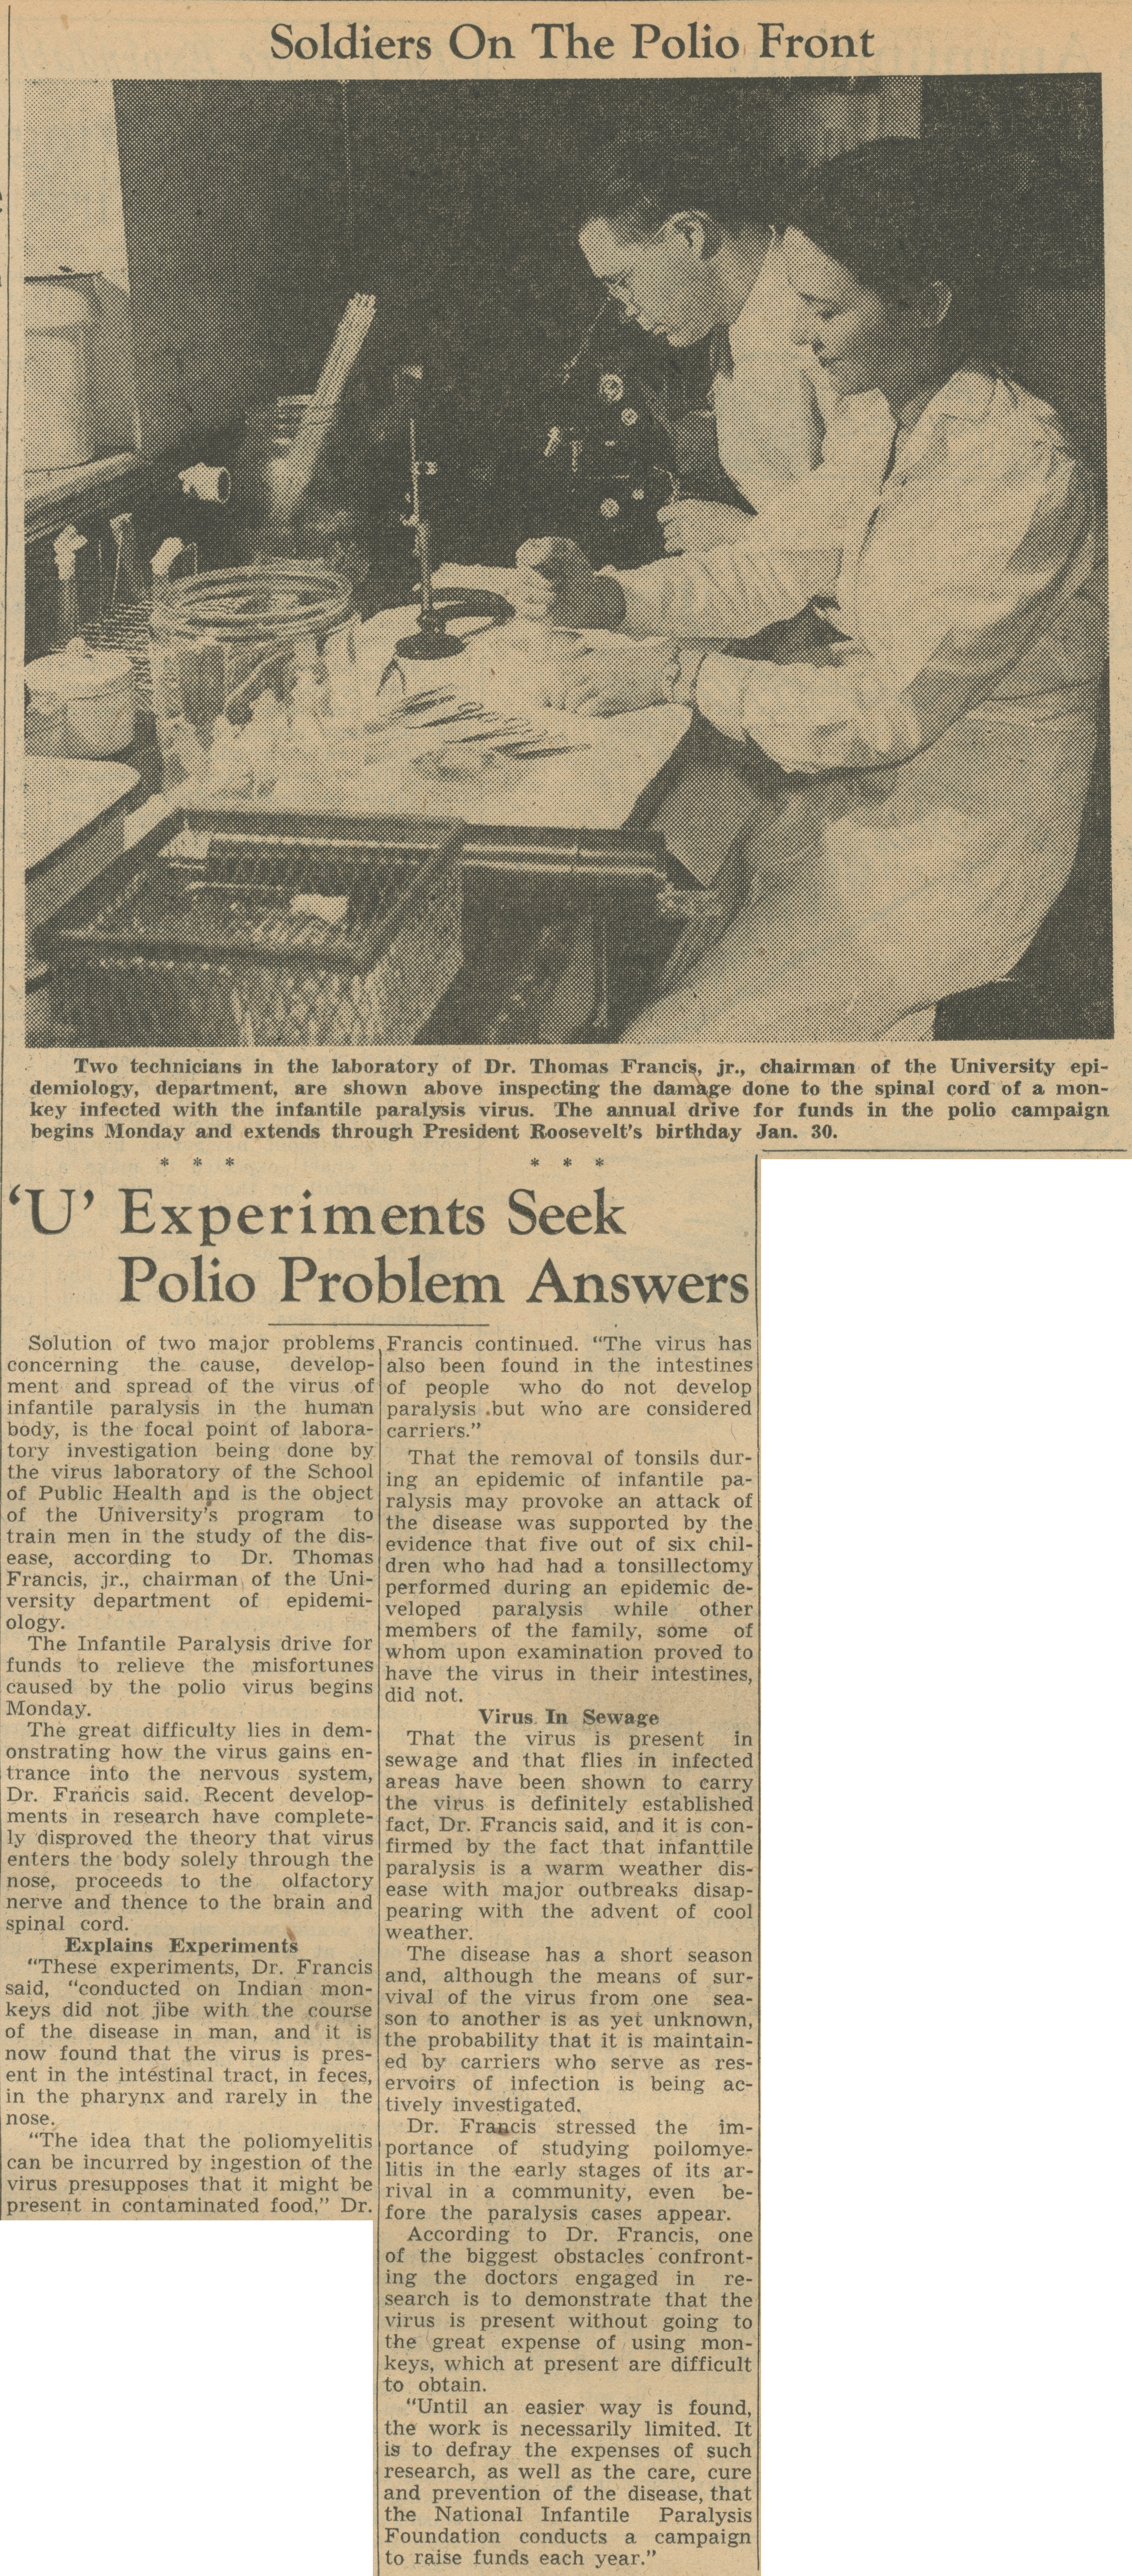 Soldiers On The Polio Front - 'U' Experiments Seek Polio Problem Answers image